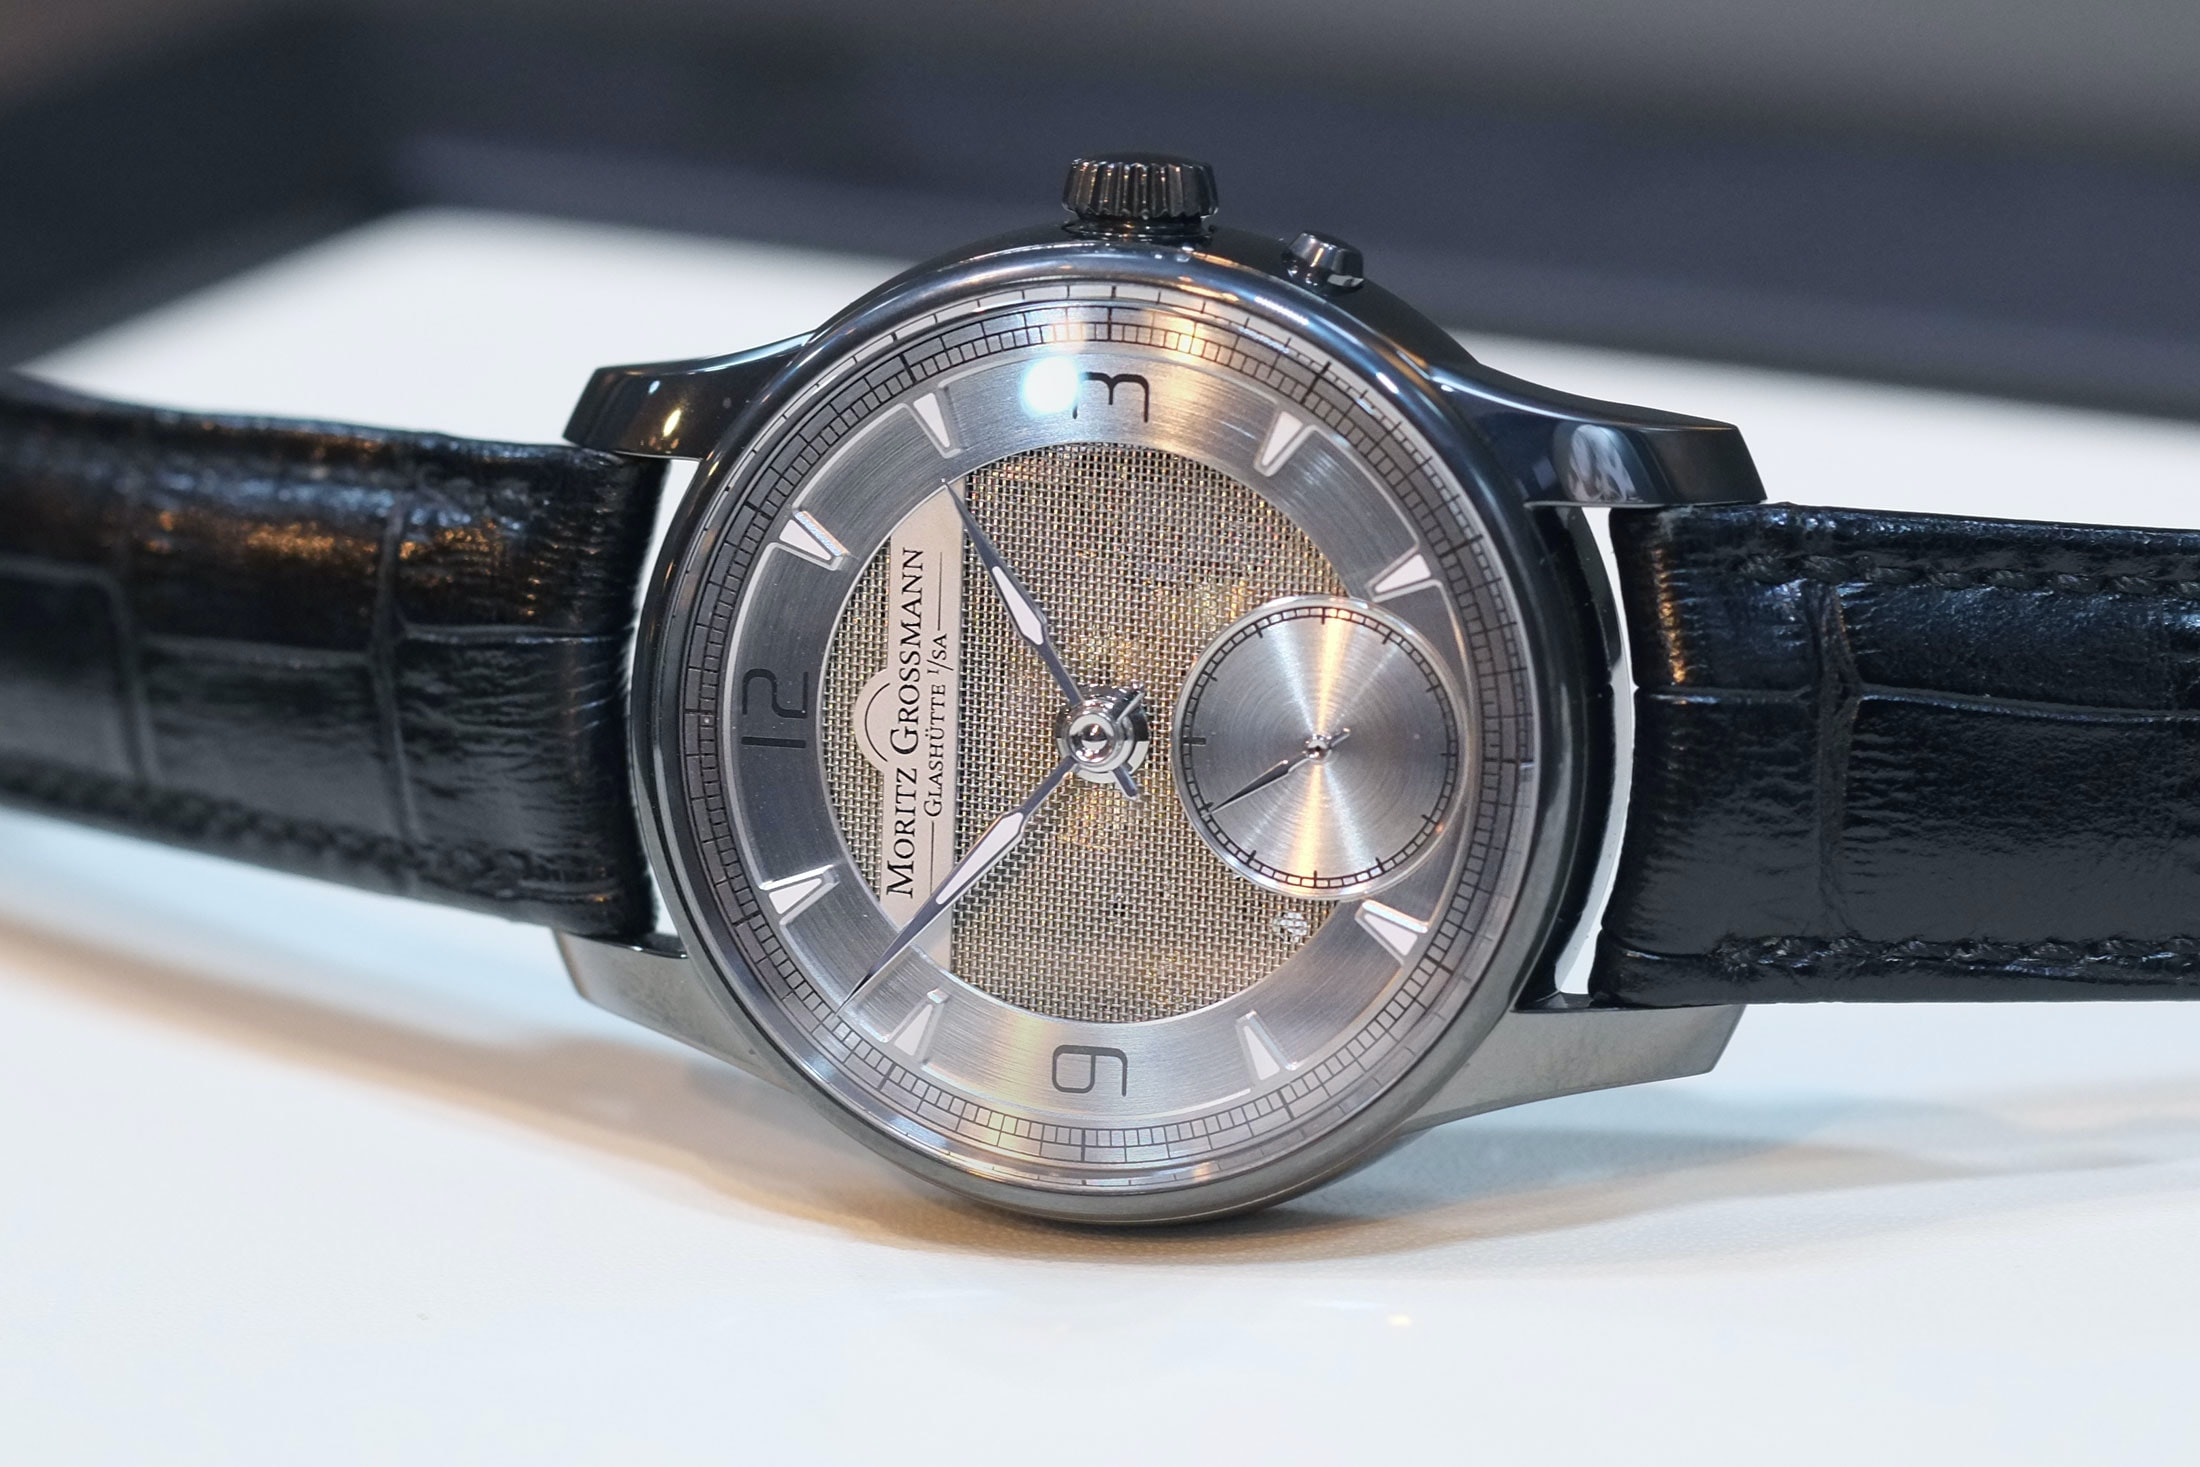 atum pure m moritz grossmann mesh dial Hands-On: The Moritz Grossmann Atum Pure M, A Polarizing But Fresh Design From Glashütte Hands-On: The Moritz Grossmann Atum Pure M, A Polarizing But Fresh Design From Glashütte mesh 3